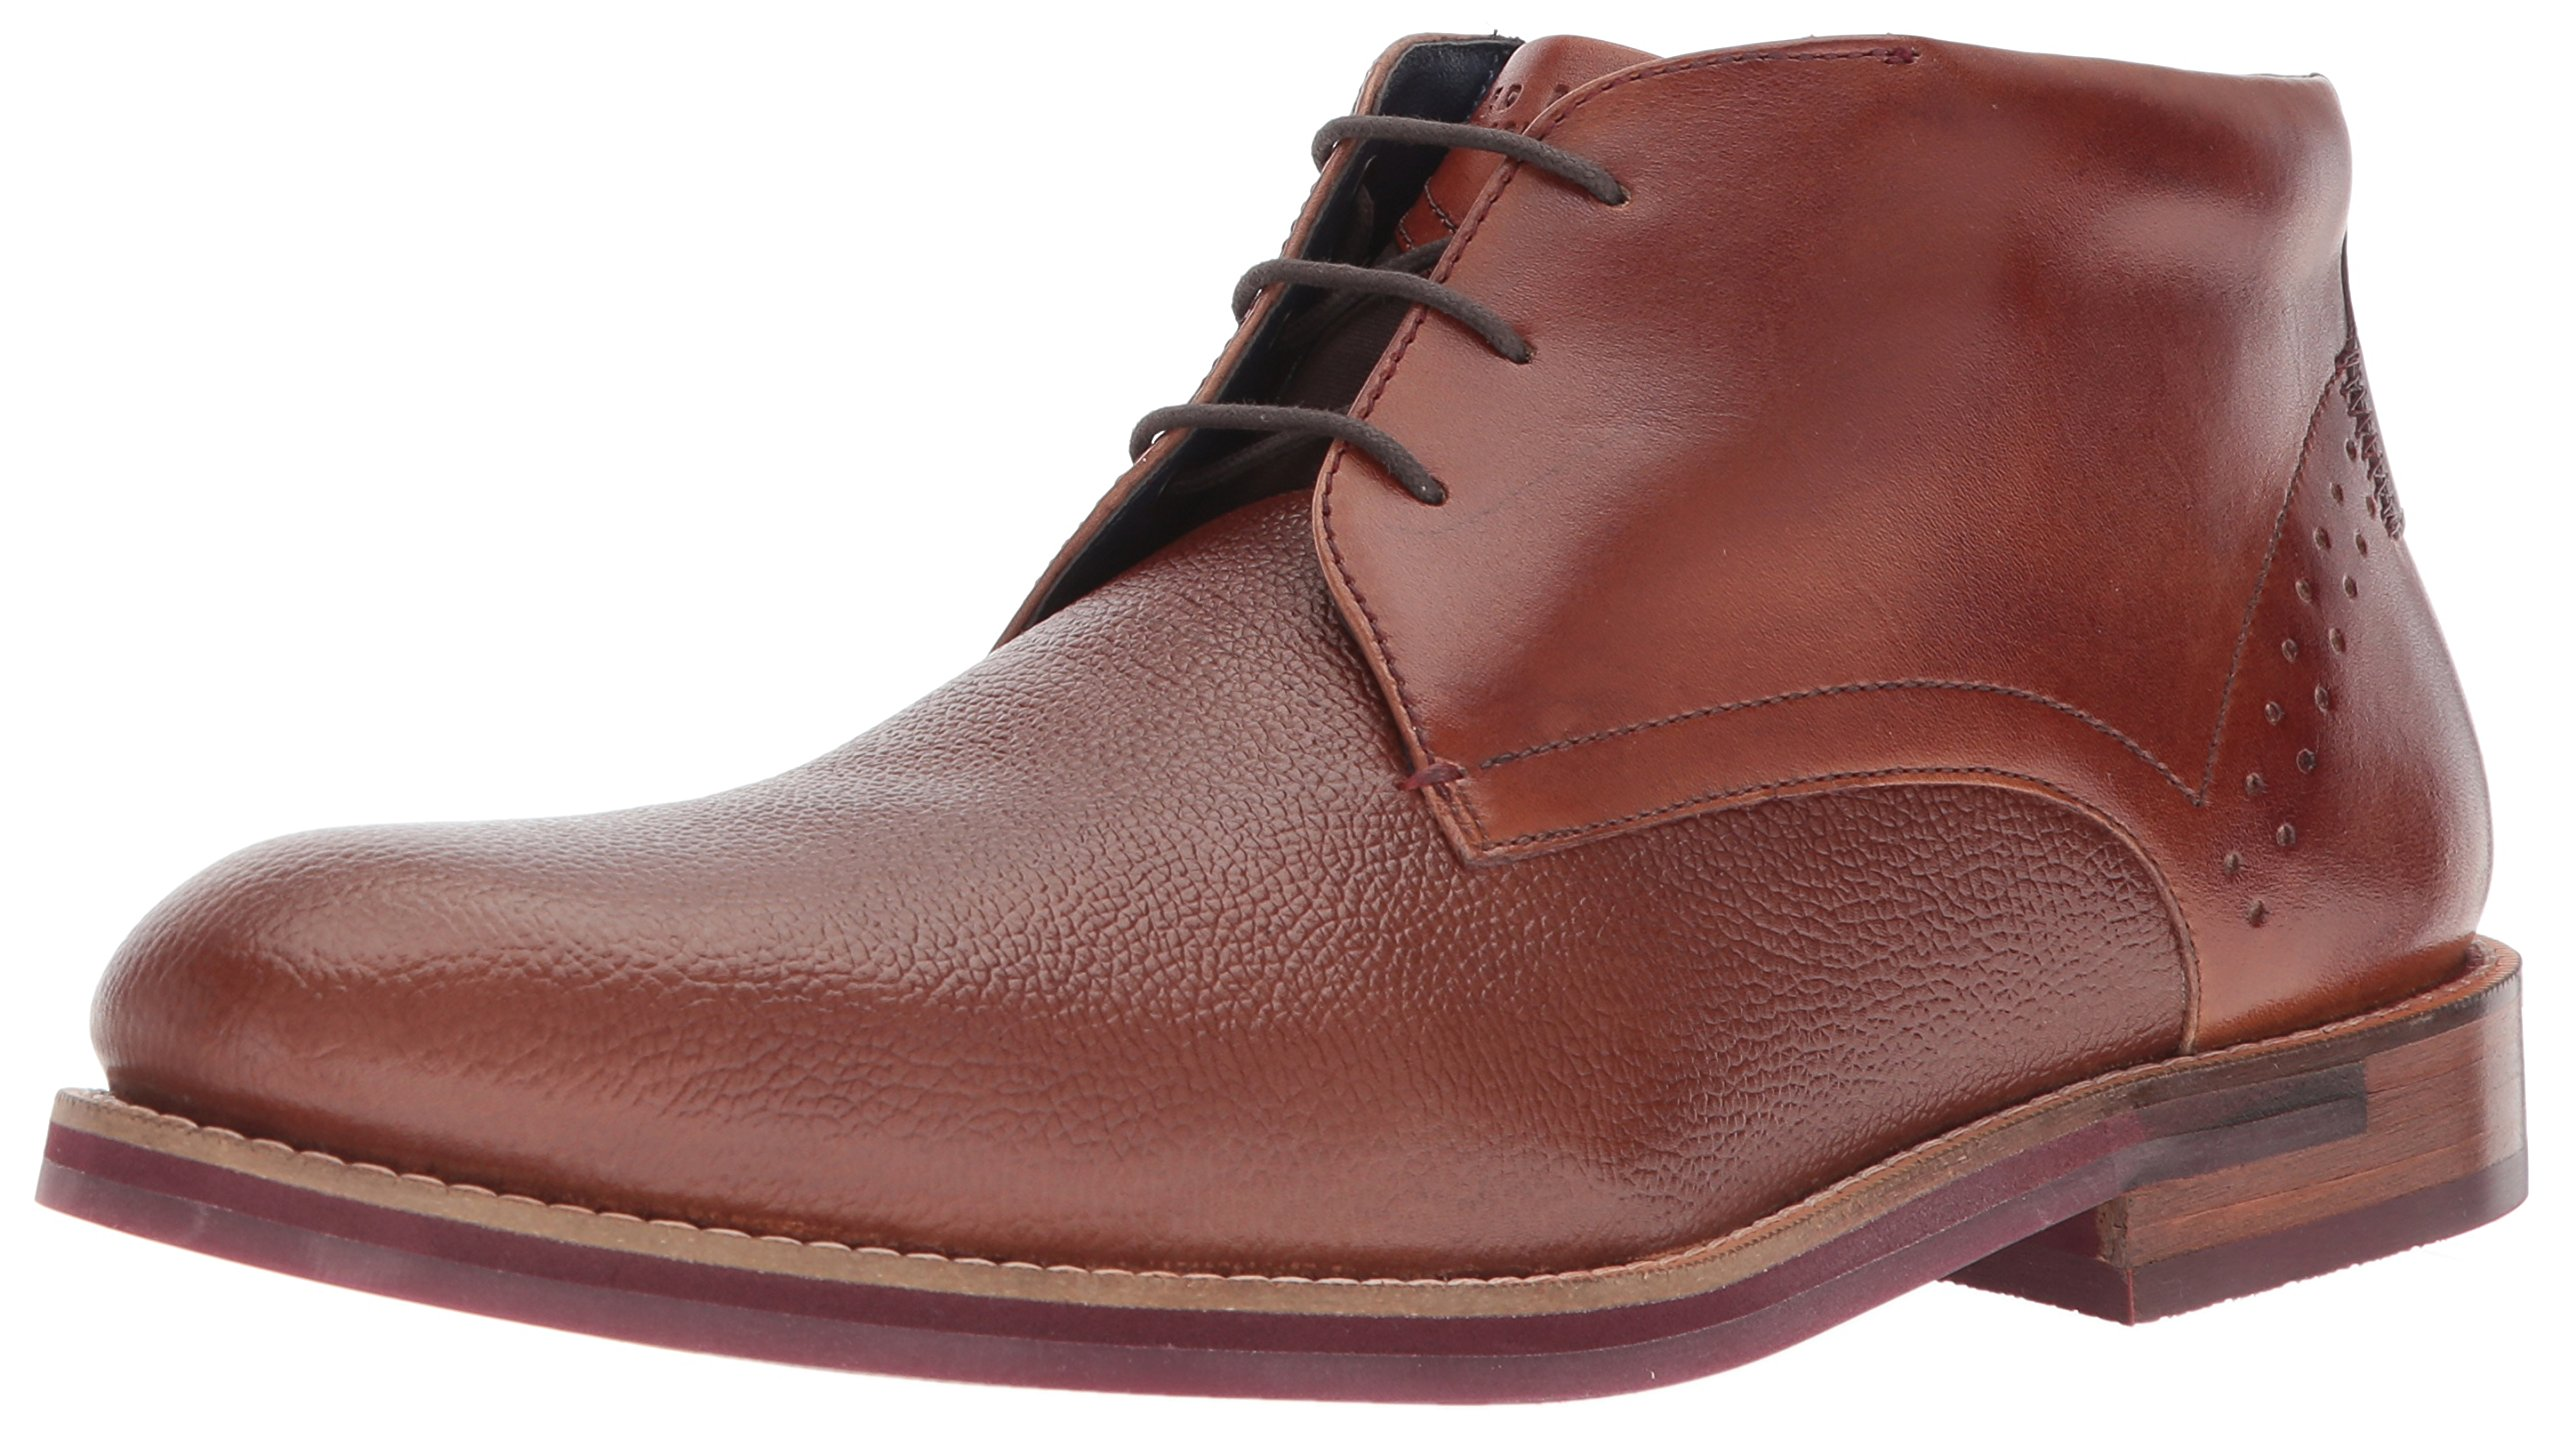 Ted Baker Men's Daiino Boot, Tan Leather, 8.5 D(M) US